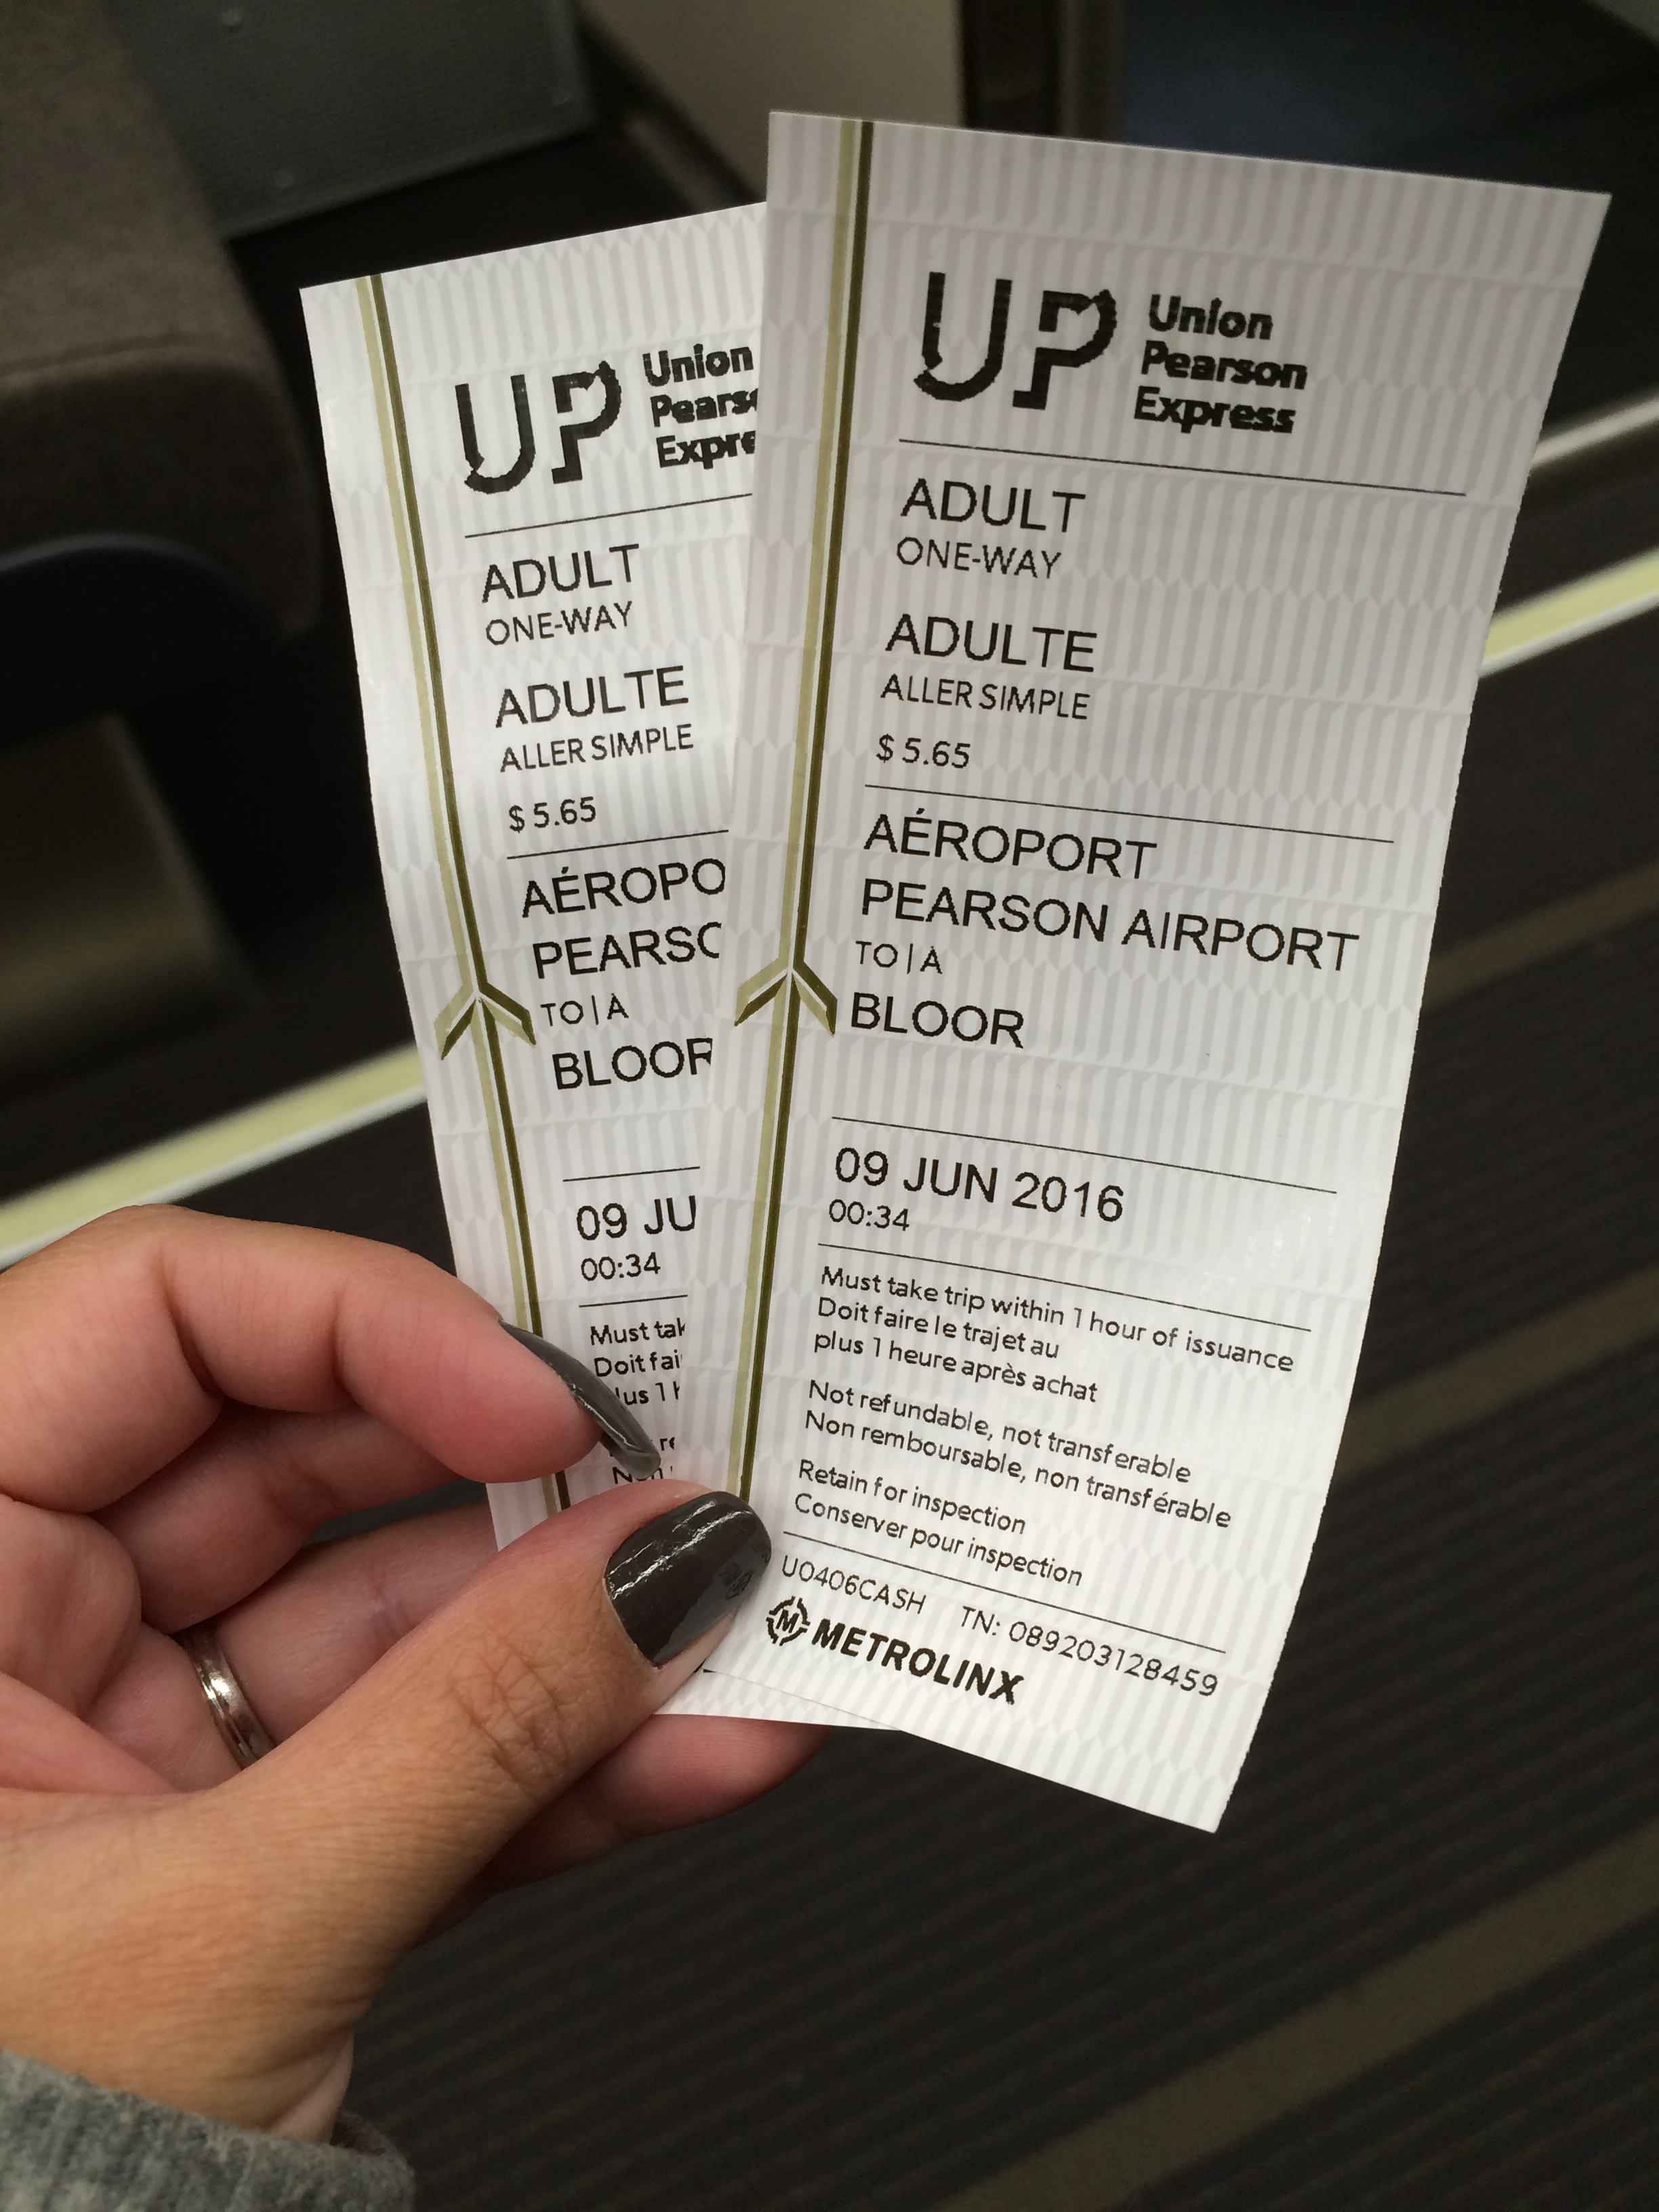 up express pearson airport